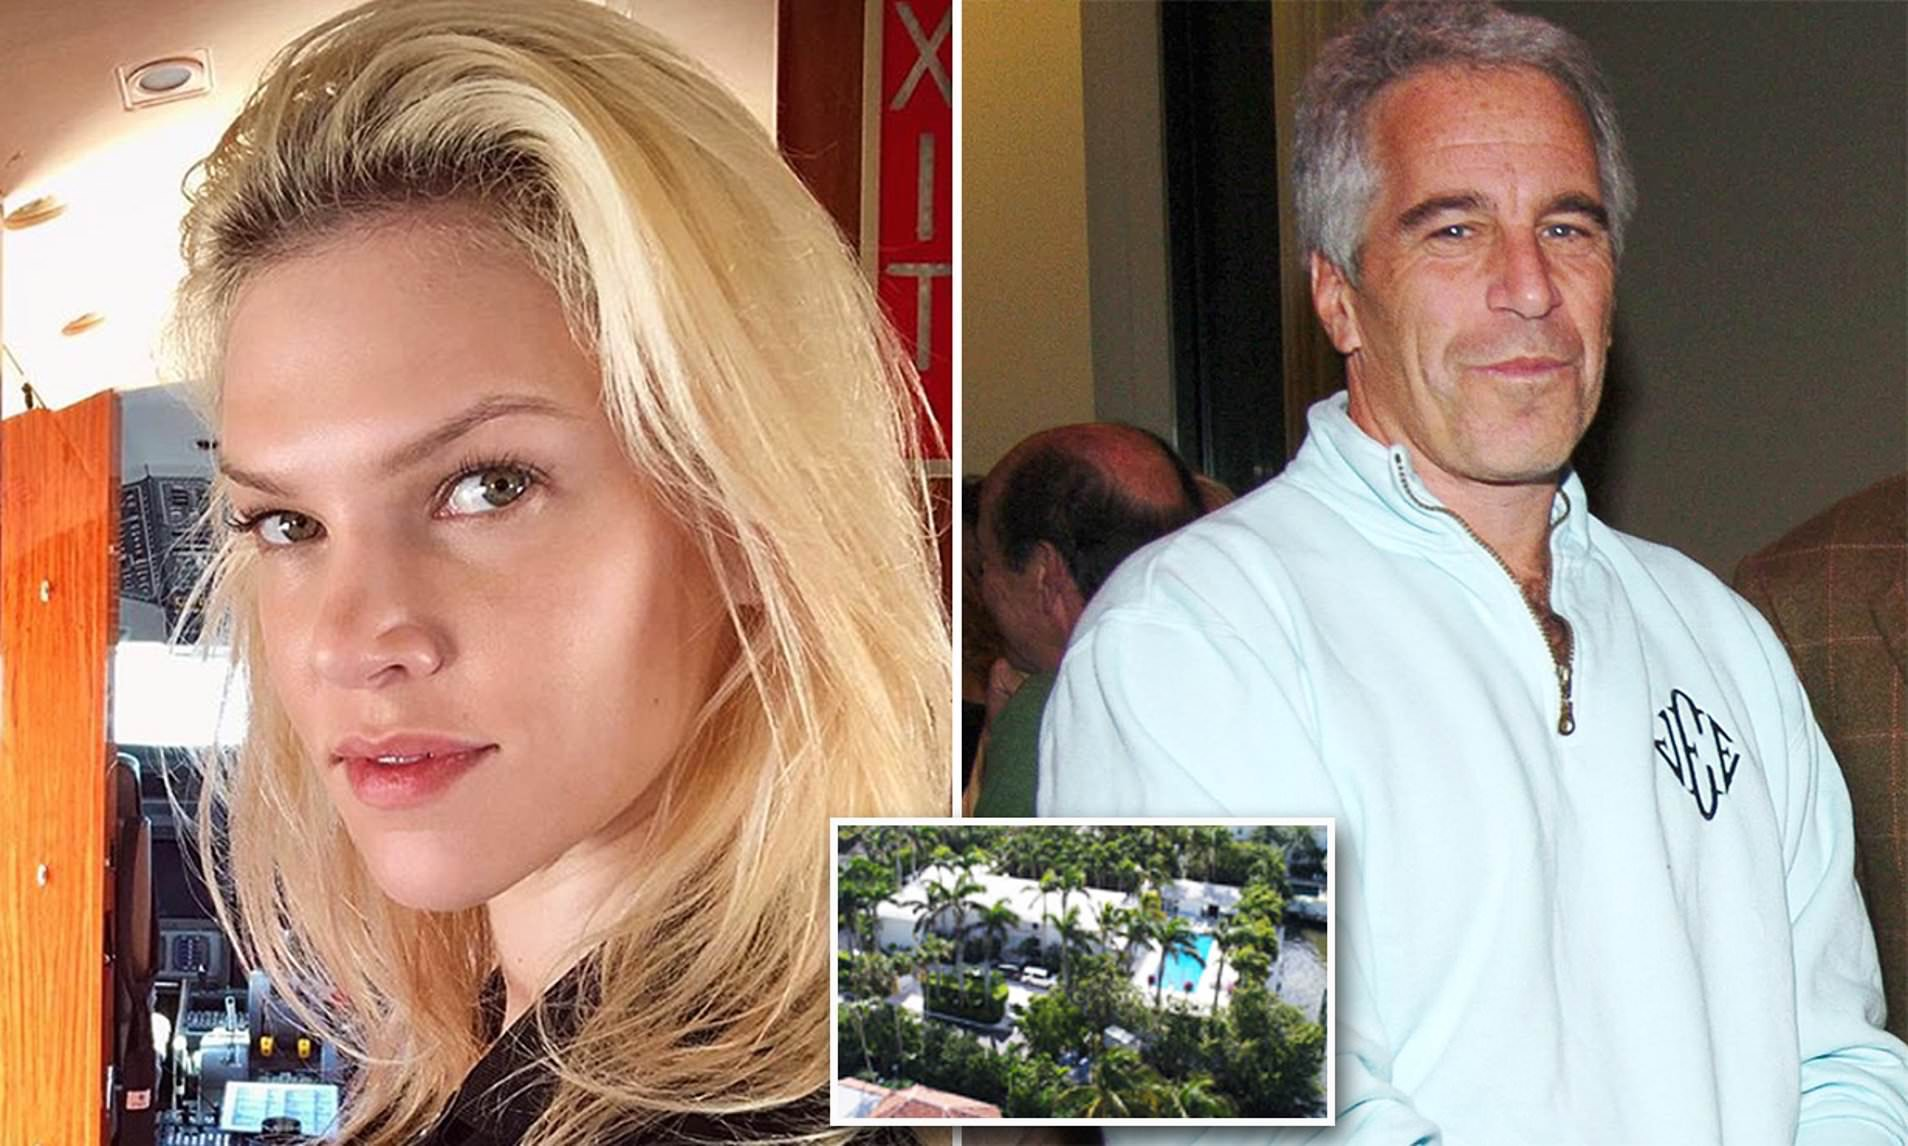 We've seen the dirty work that Jeffrey Epstein has done. But is his entire family like this? We trace the Epstein family tree to see what it turns up.